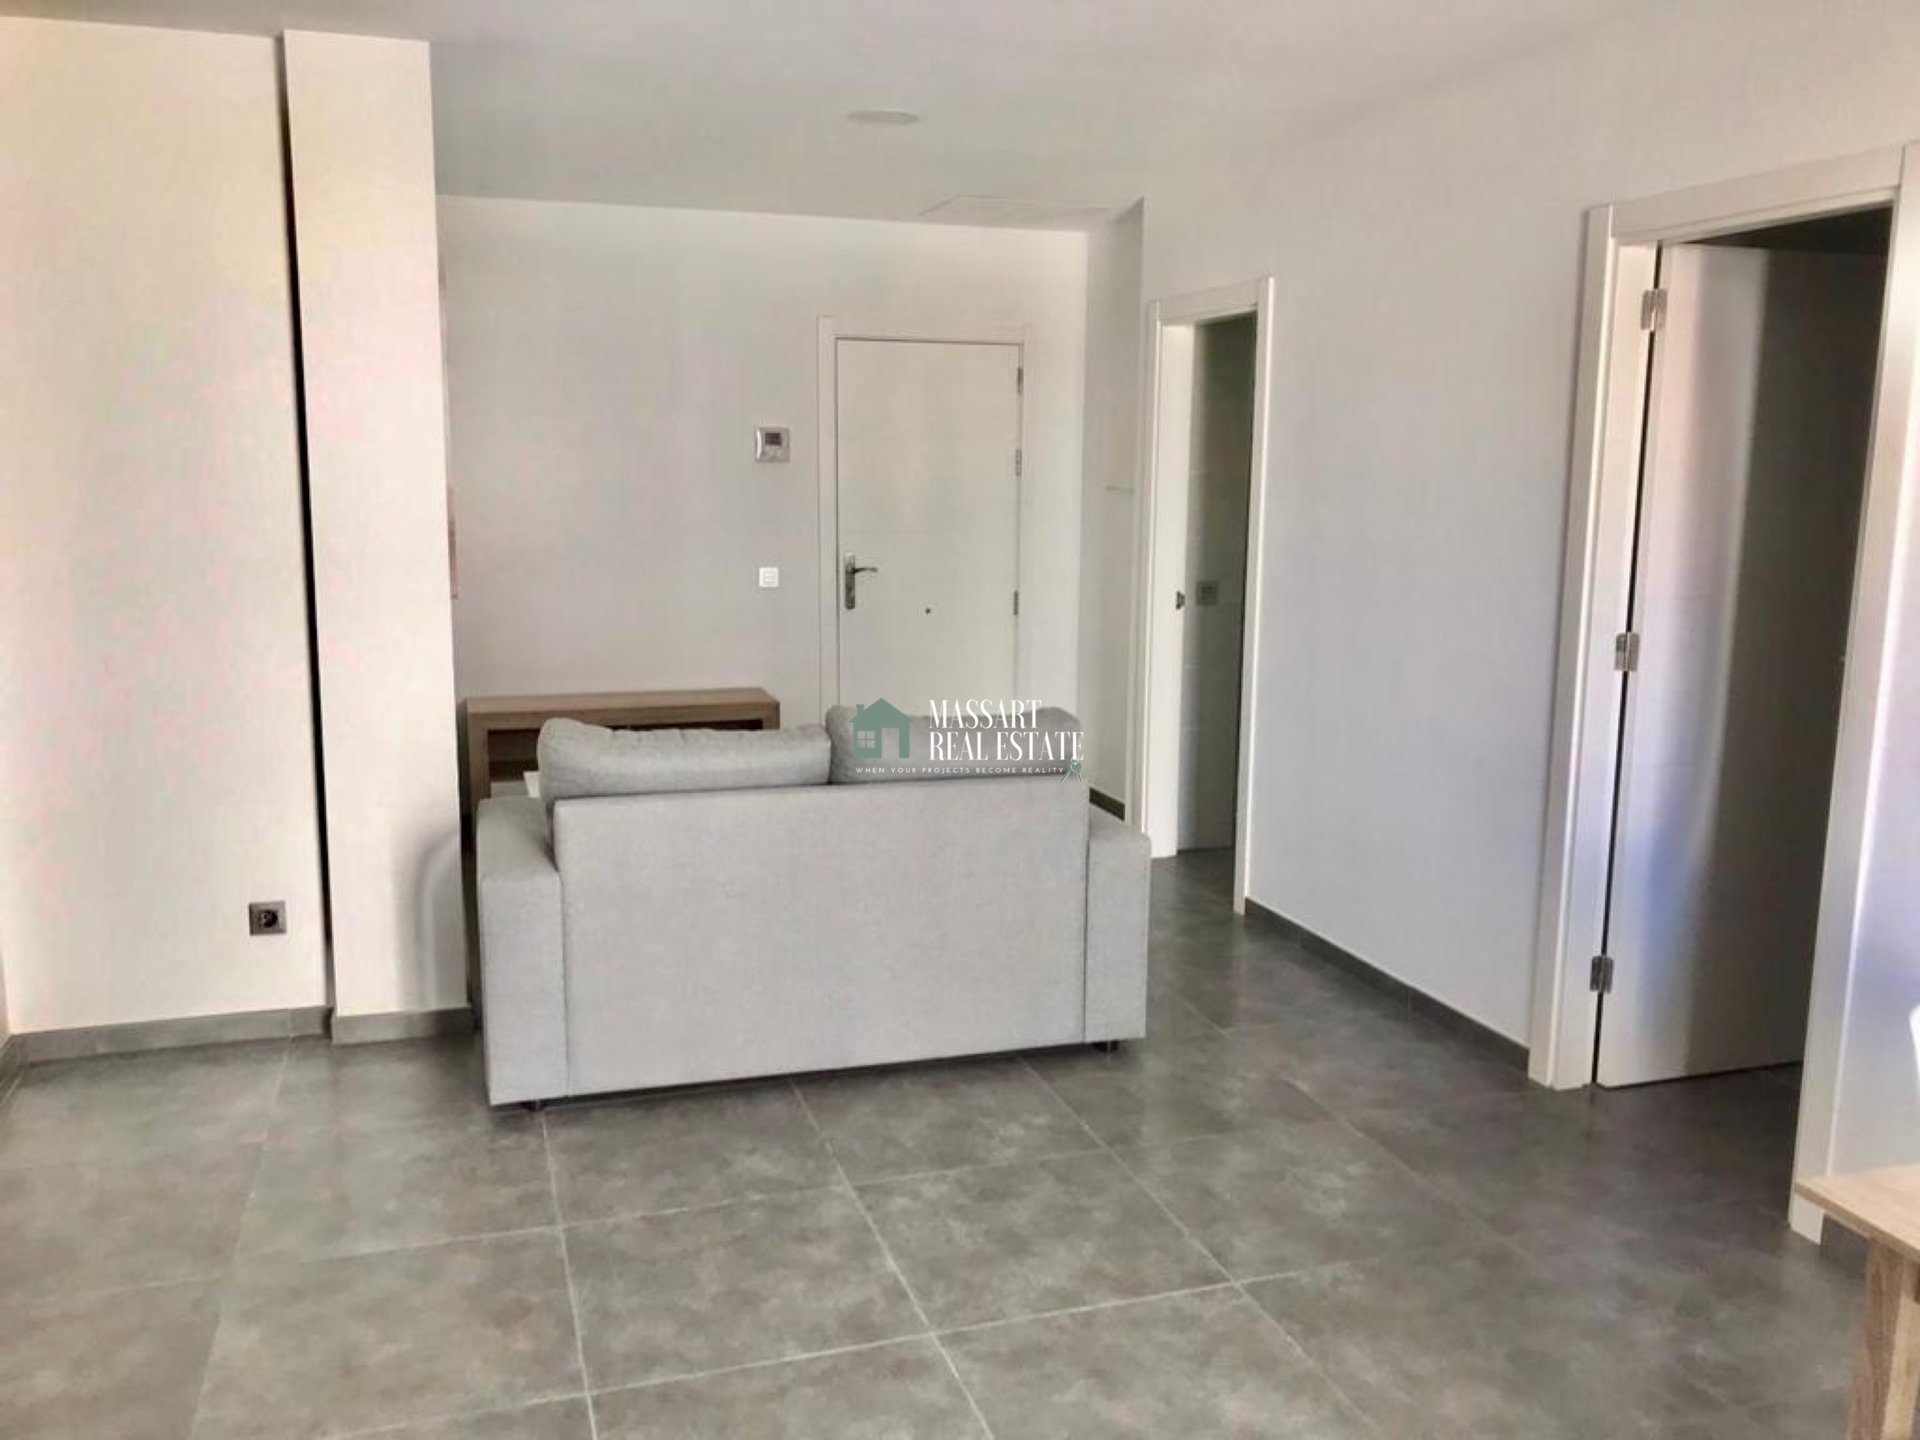 Apartment of about 60 m2 fully furnished in a modern style and characterized by its strategic location, in the center of Adeje.